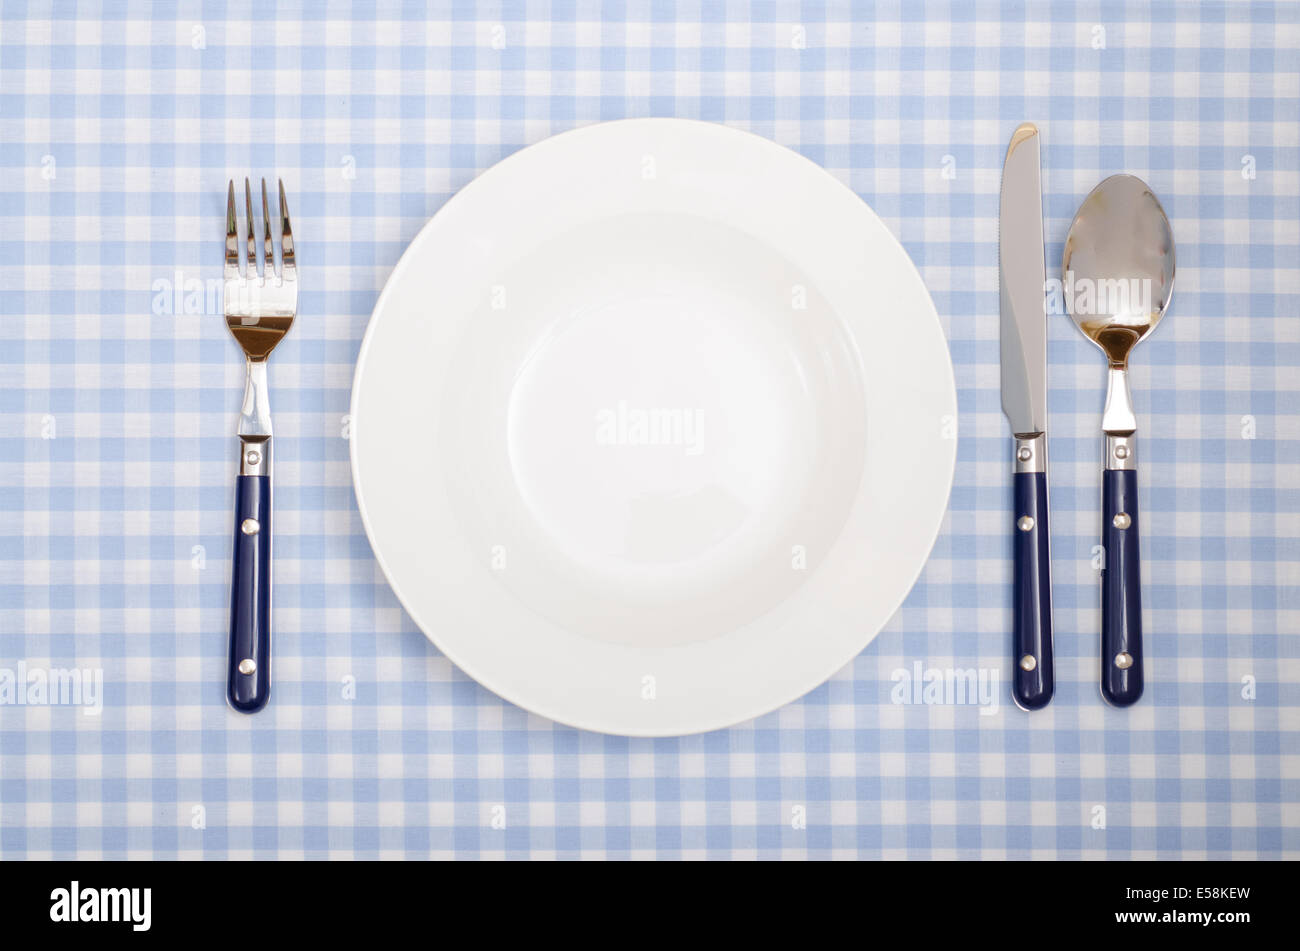 checked table cloth restaurant stockfotos checked table cloth restaurant bilder alamy. Black Bedroom Furniture Sets. Home Design Ideas